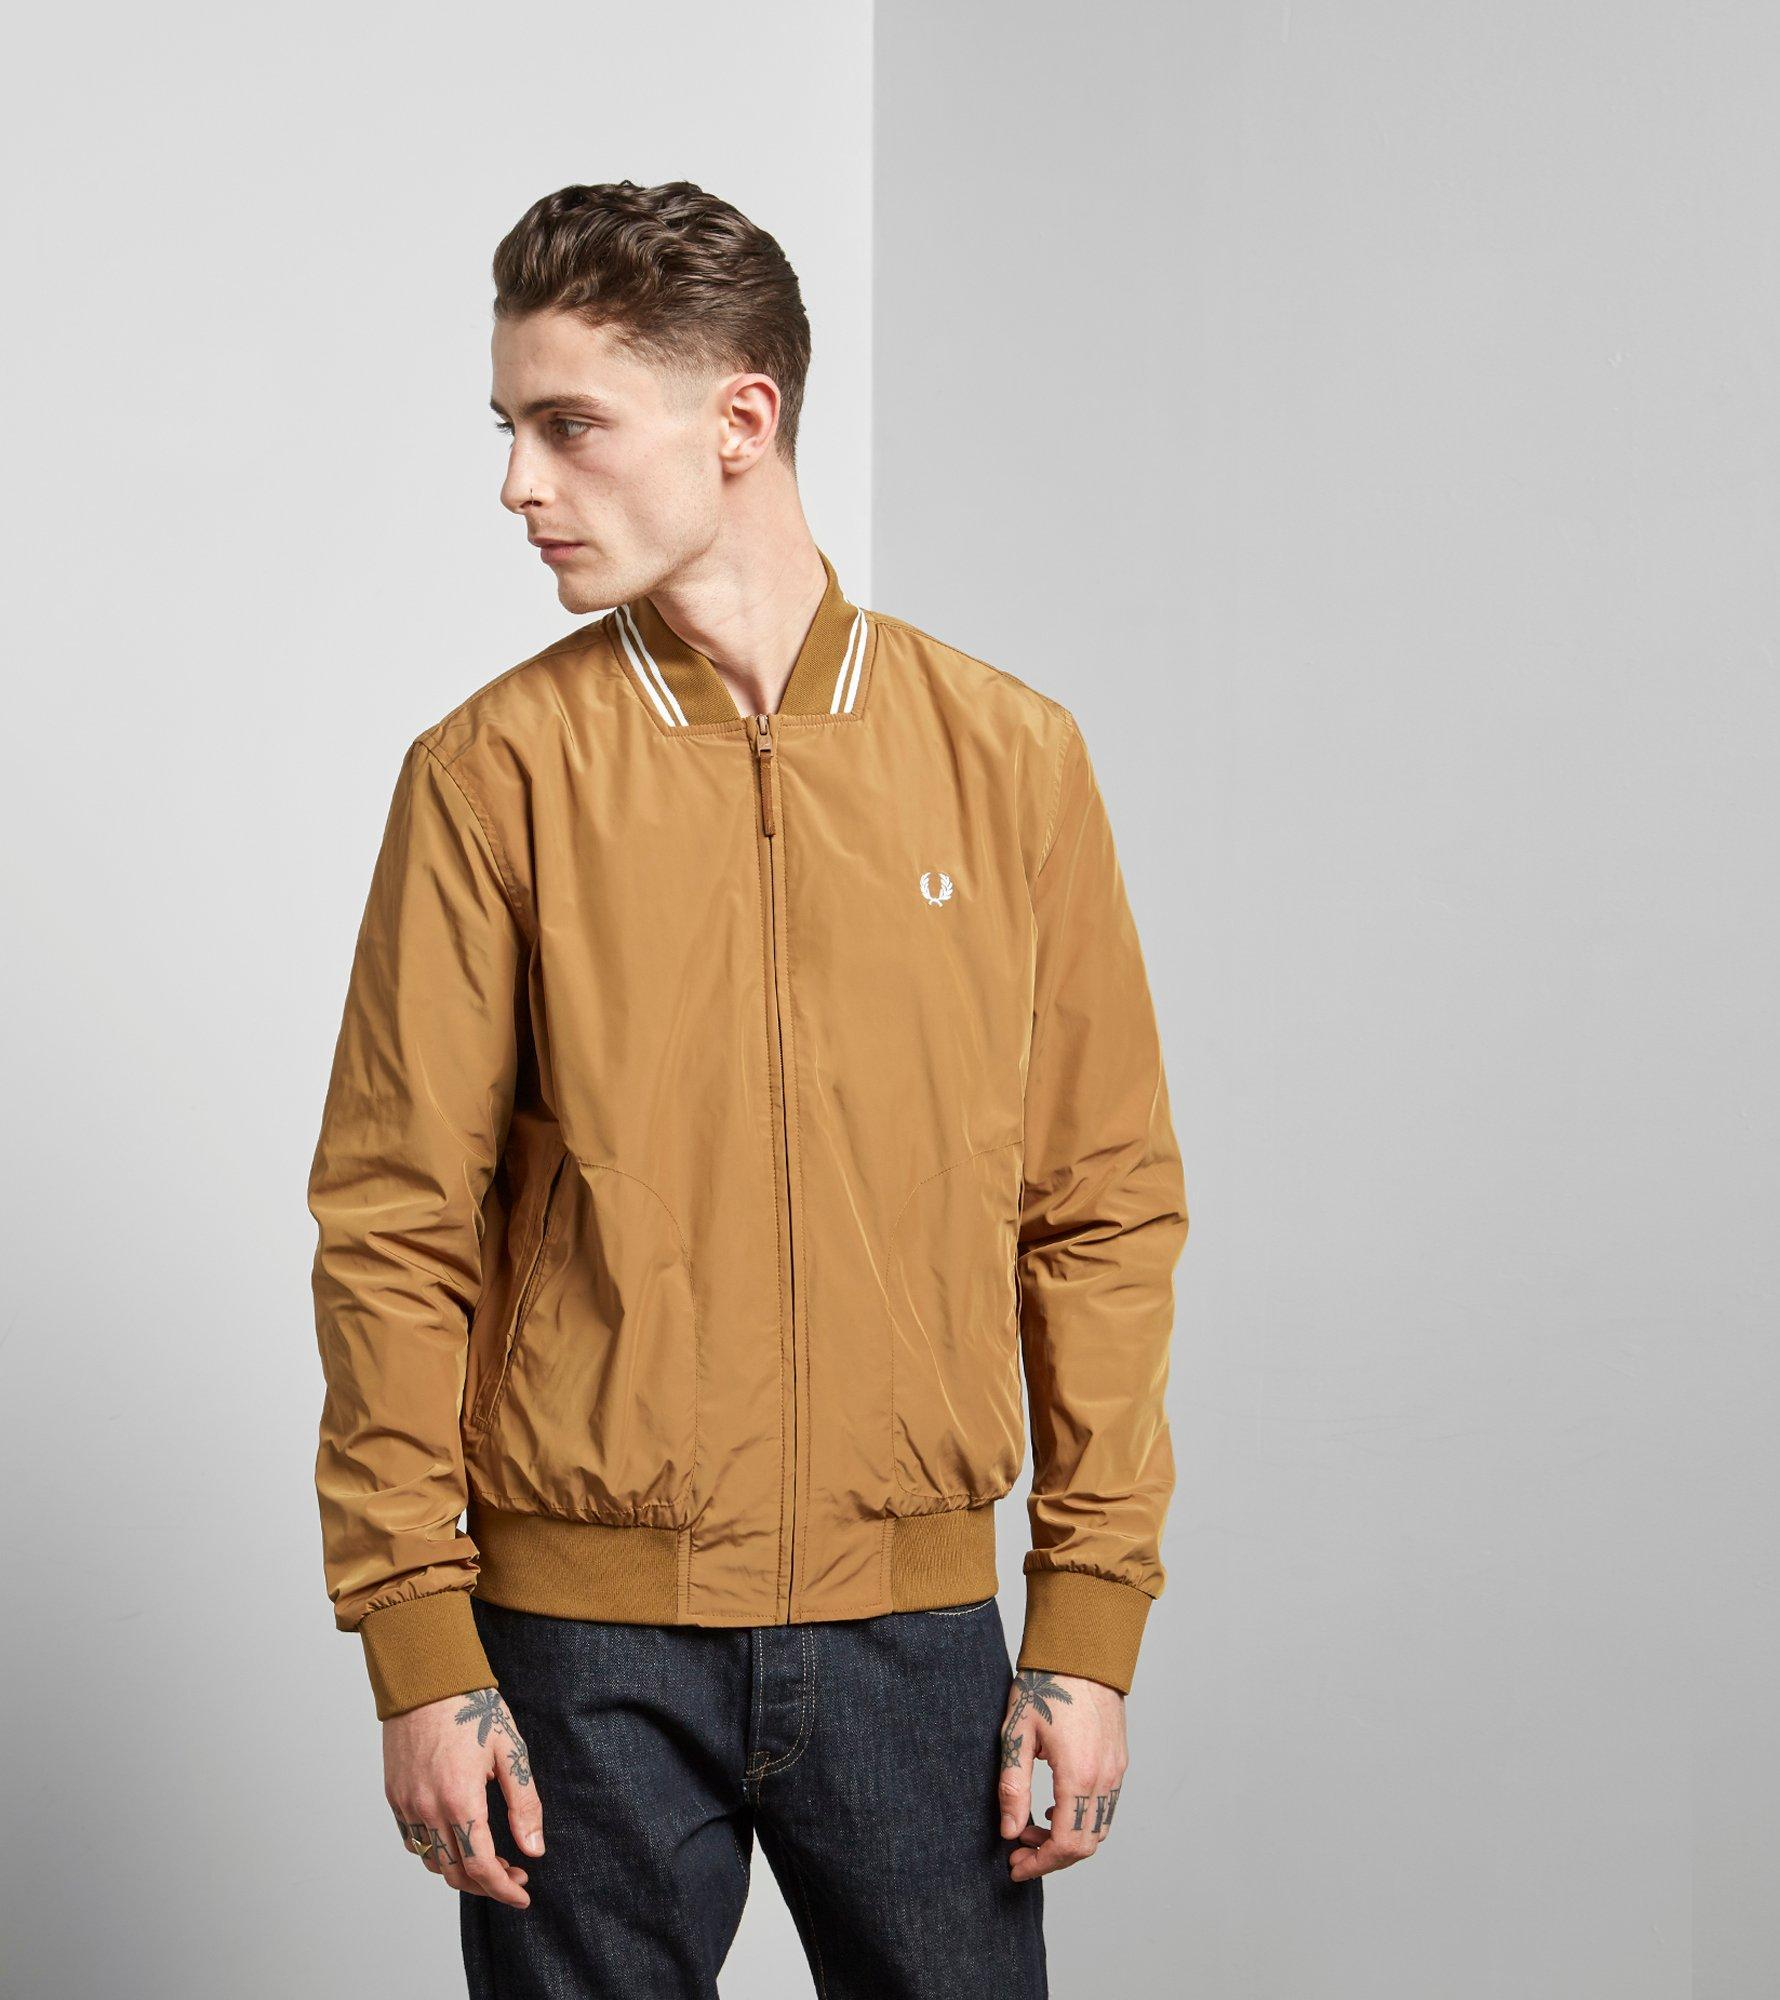 42a8cb743 Fred Perry Tipped Bomber Jacket in Brown for Men - Lyst